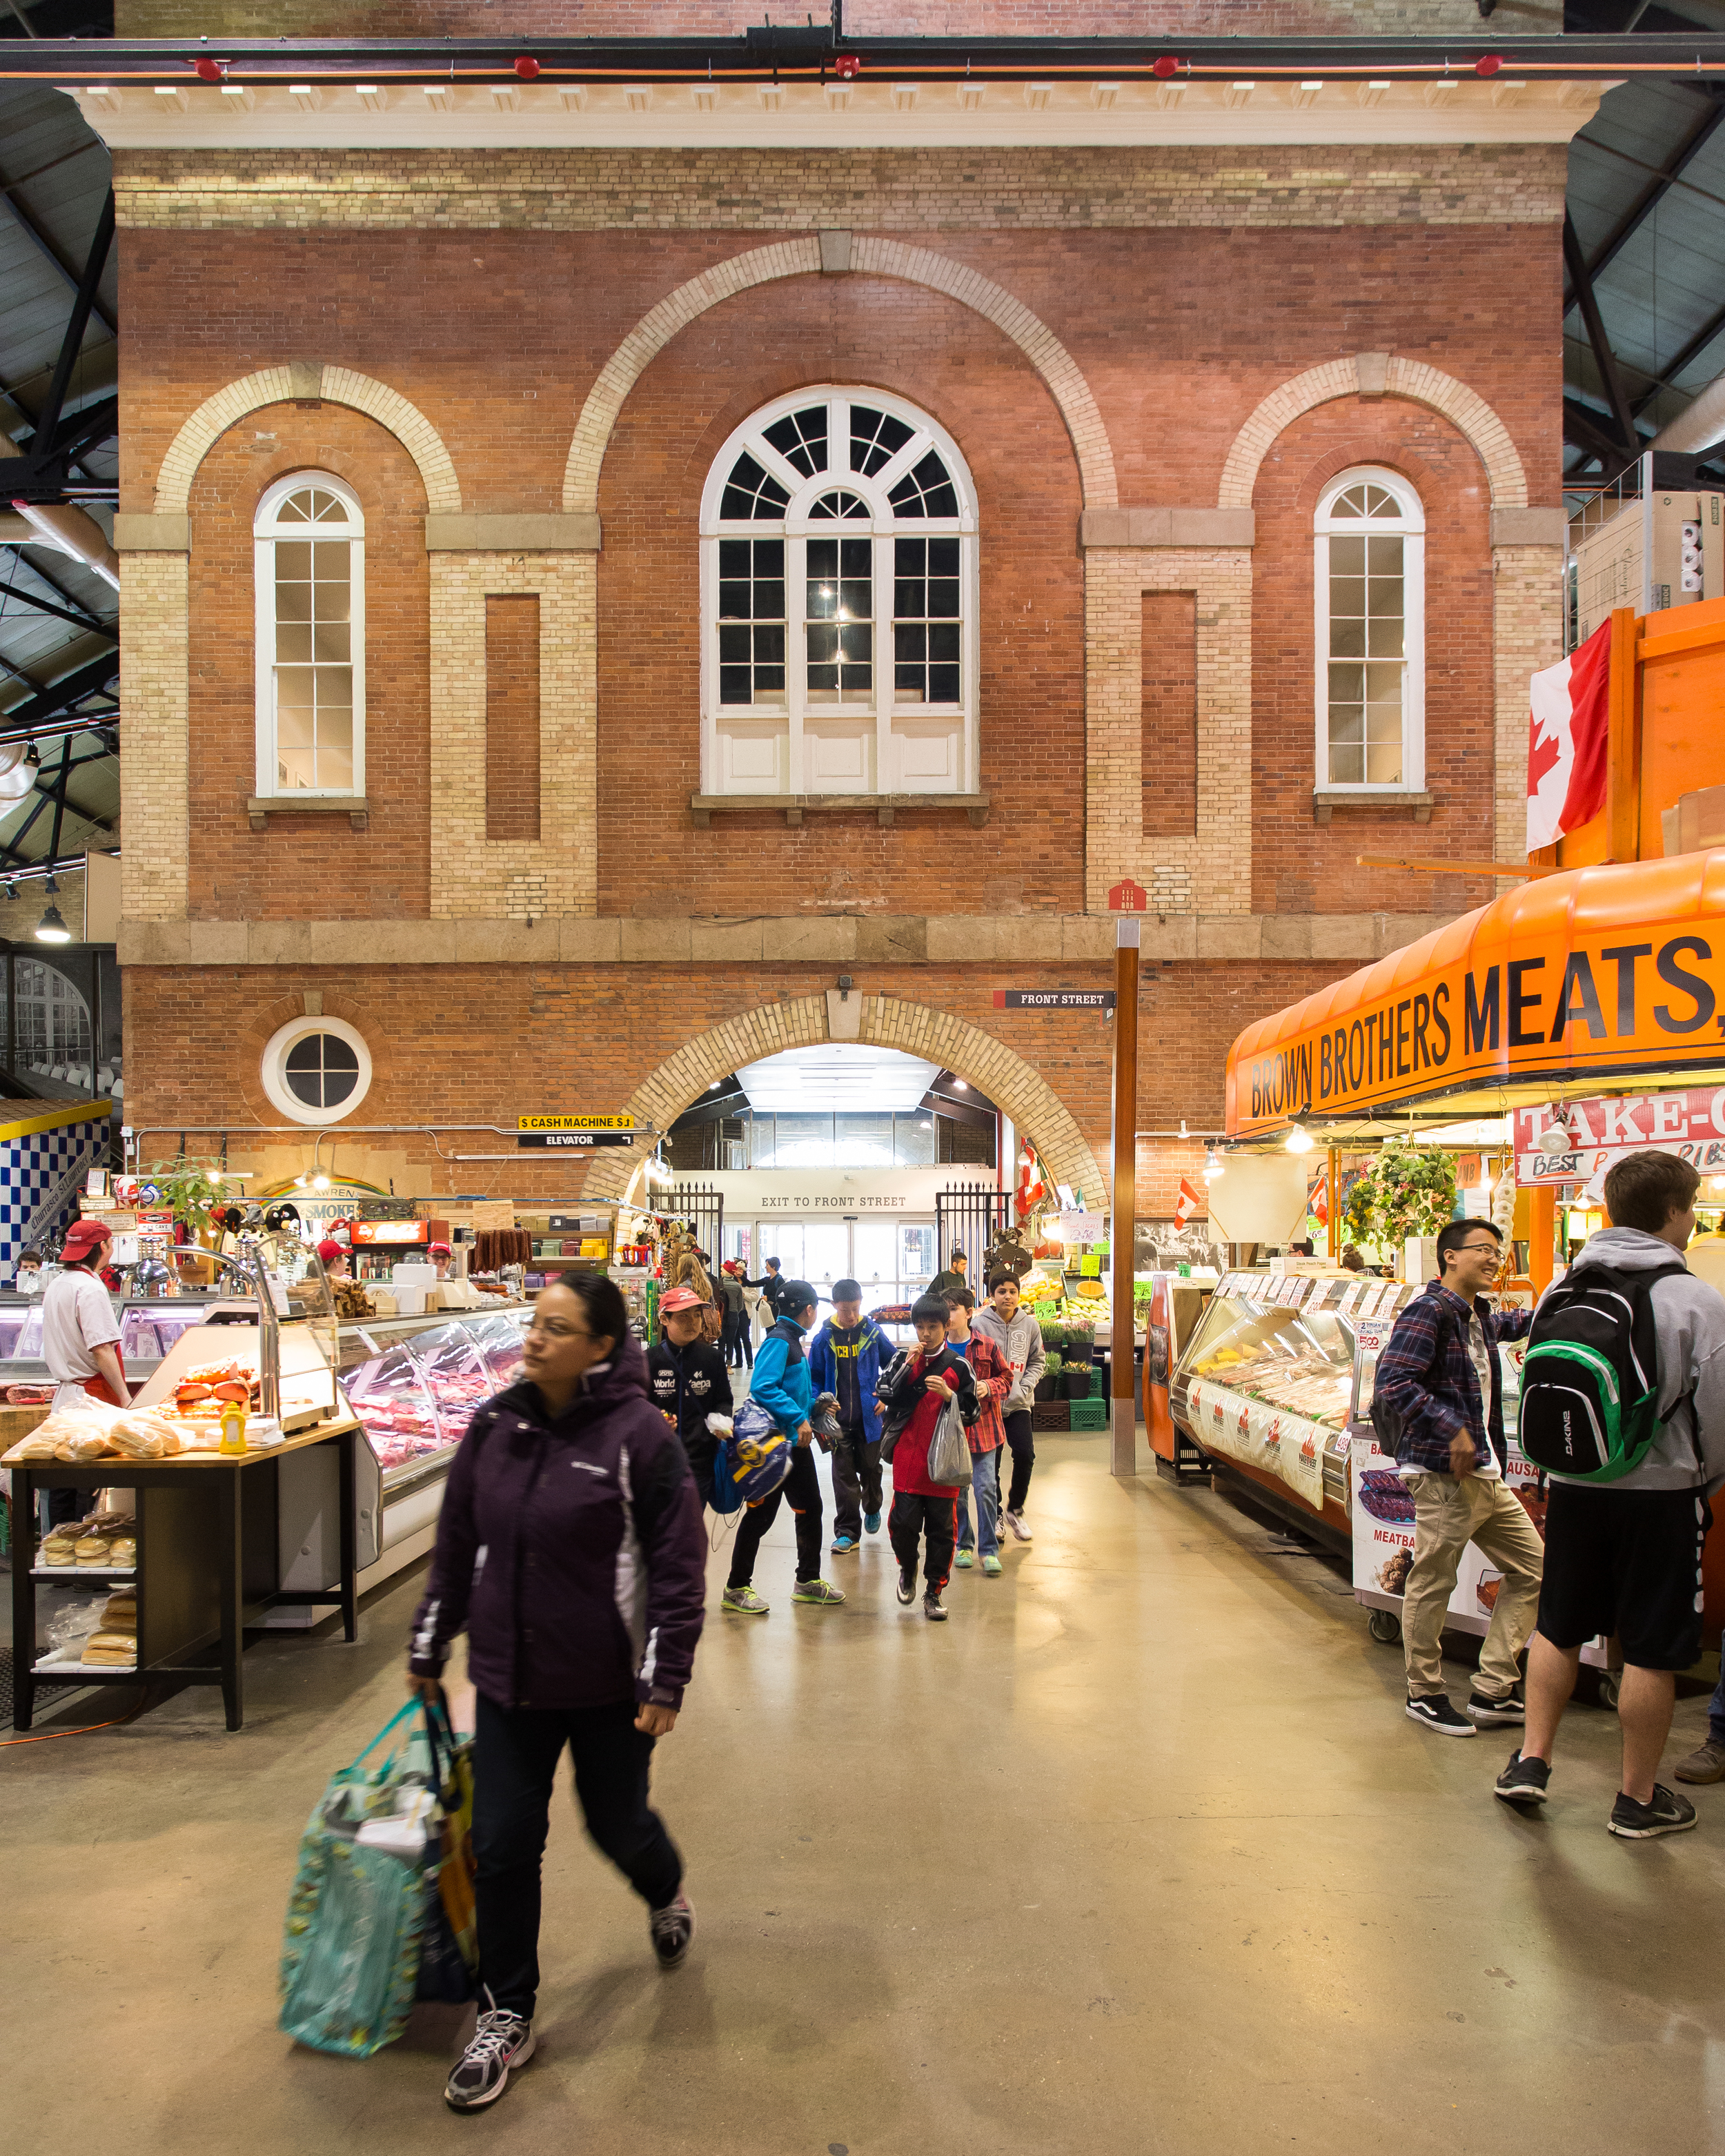 St. Lawrence Market South, Toronto (2014)